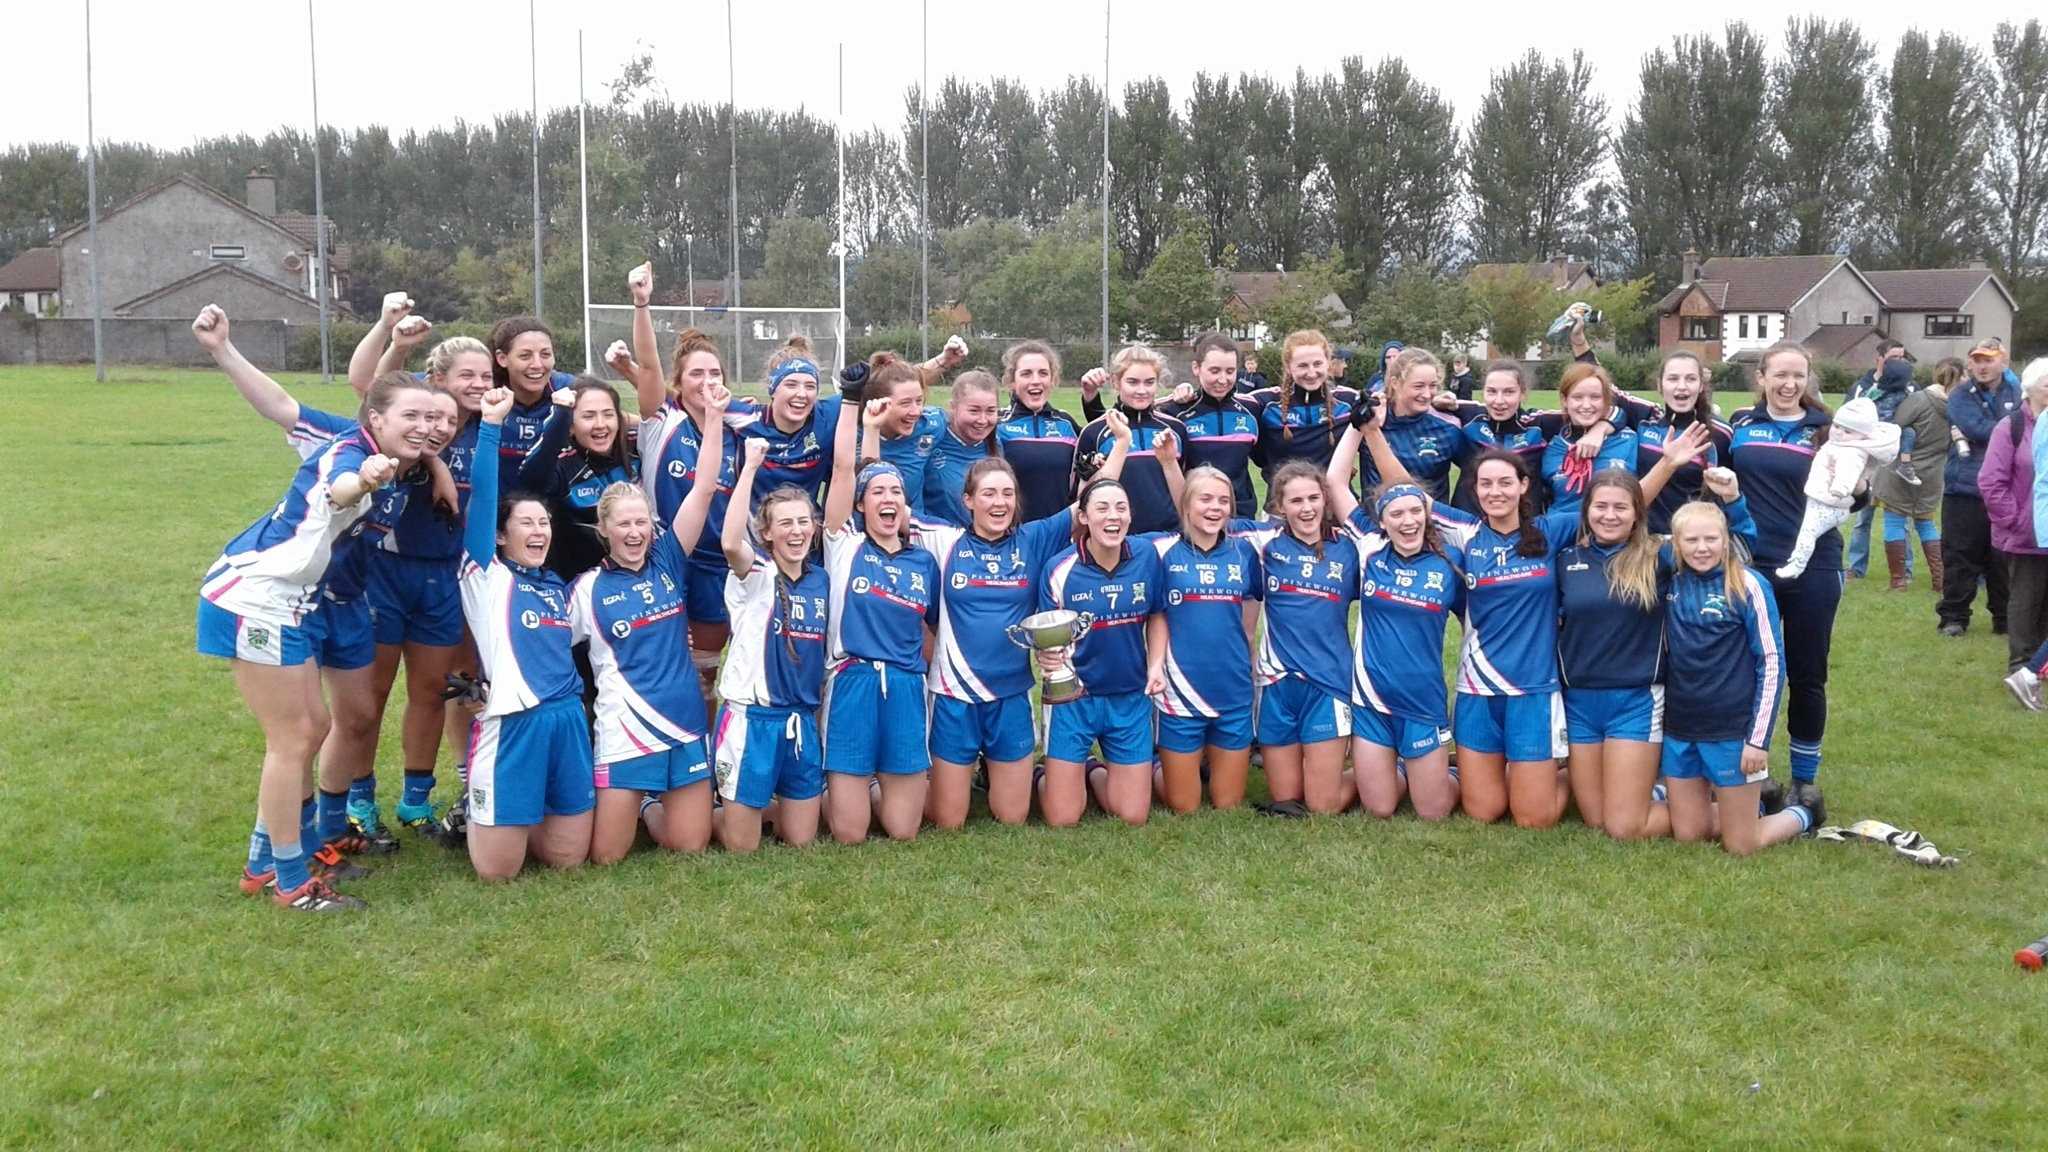 Ballymacarbry ladies return to Provincial action tonight in Mallow